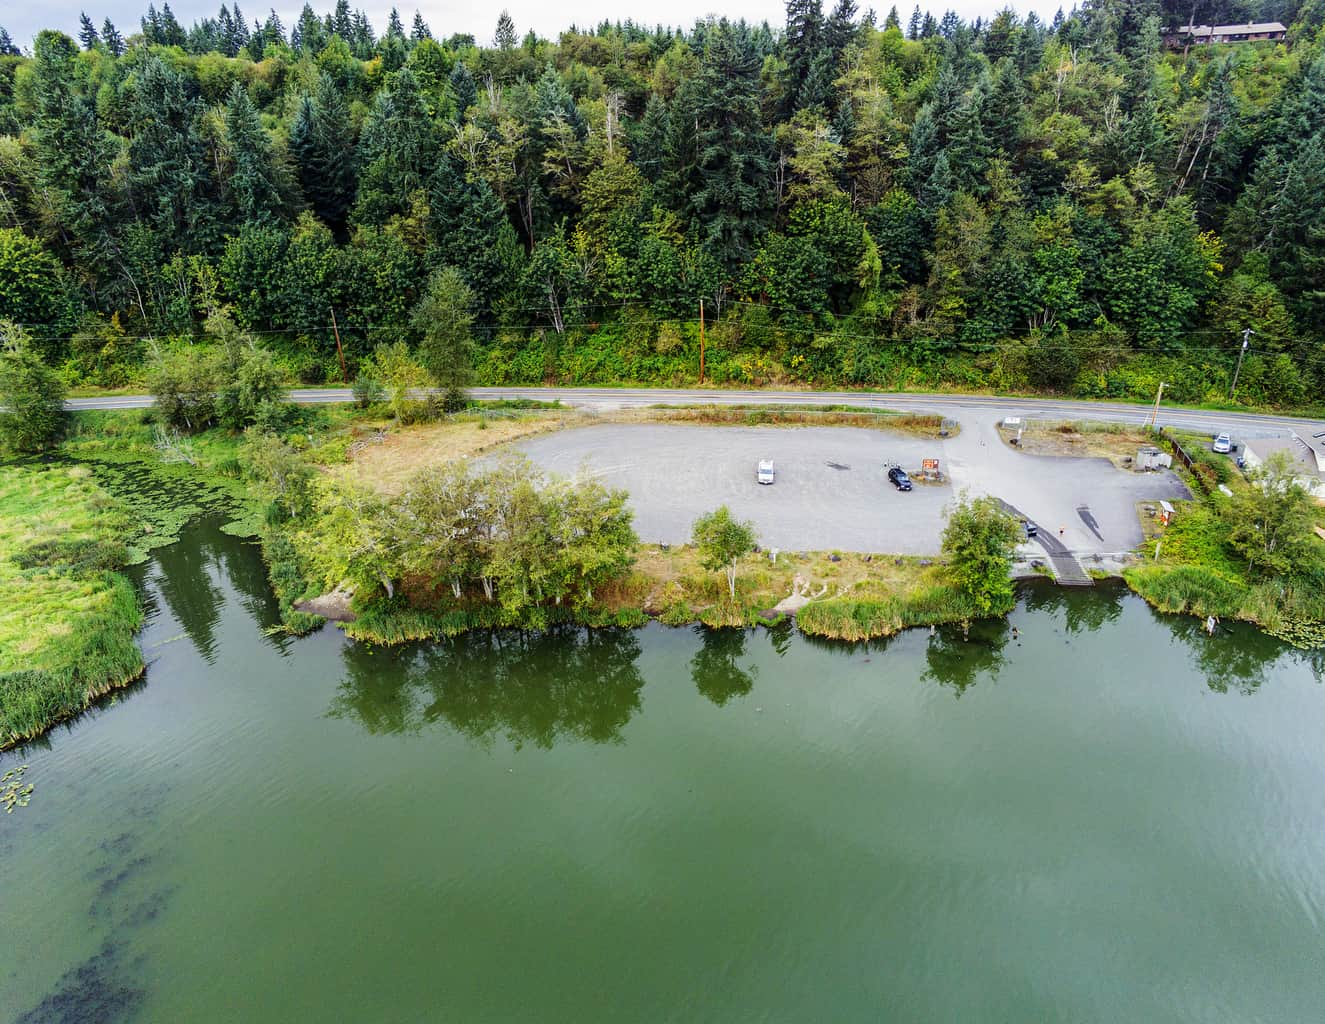 dock and boat launch area at ohop lake